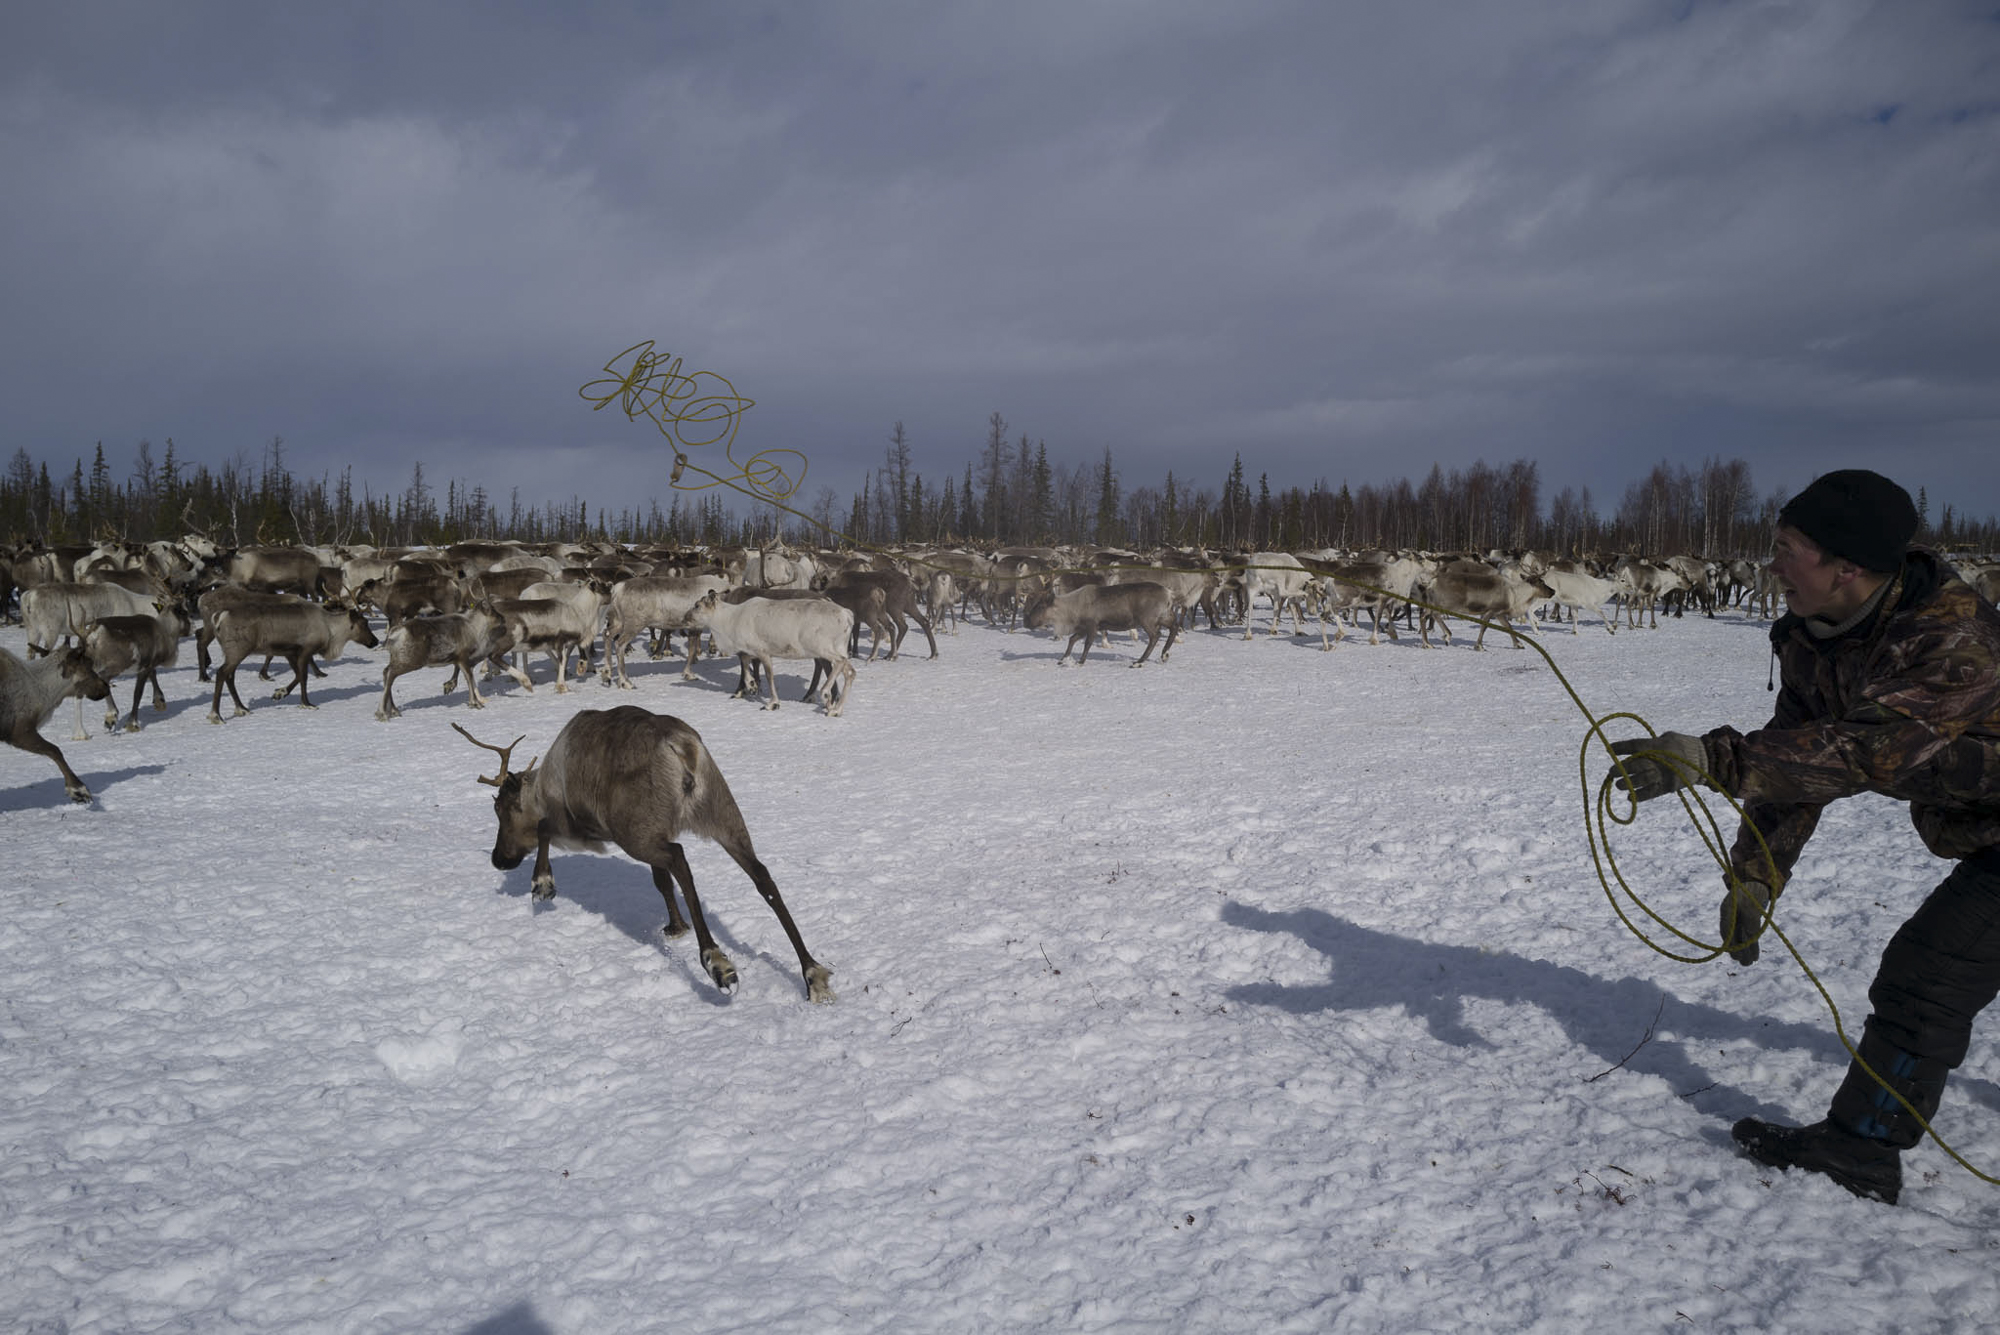 The reindeer herder catches the reindeer with a lasso. Photographed with Leica Q2, Siberia, 2019.  ©  Rosalynn Tay.